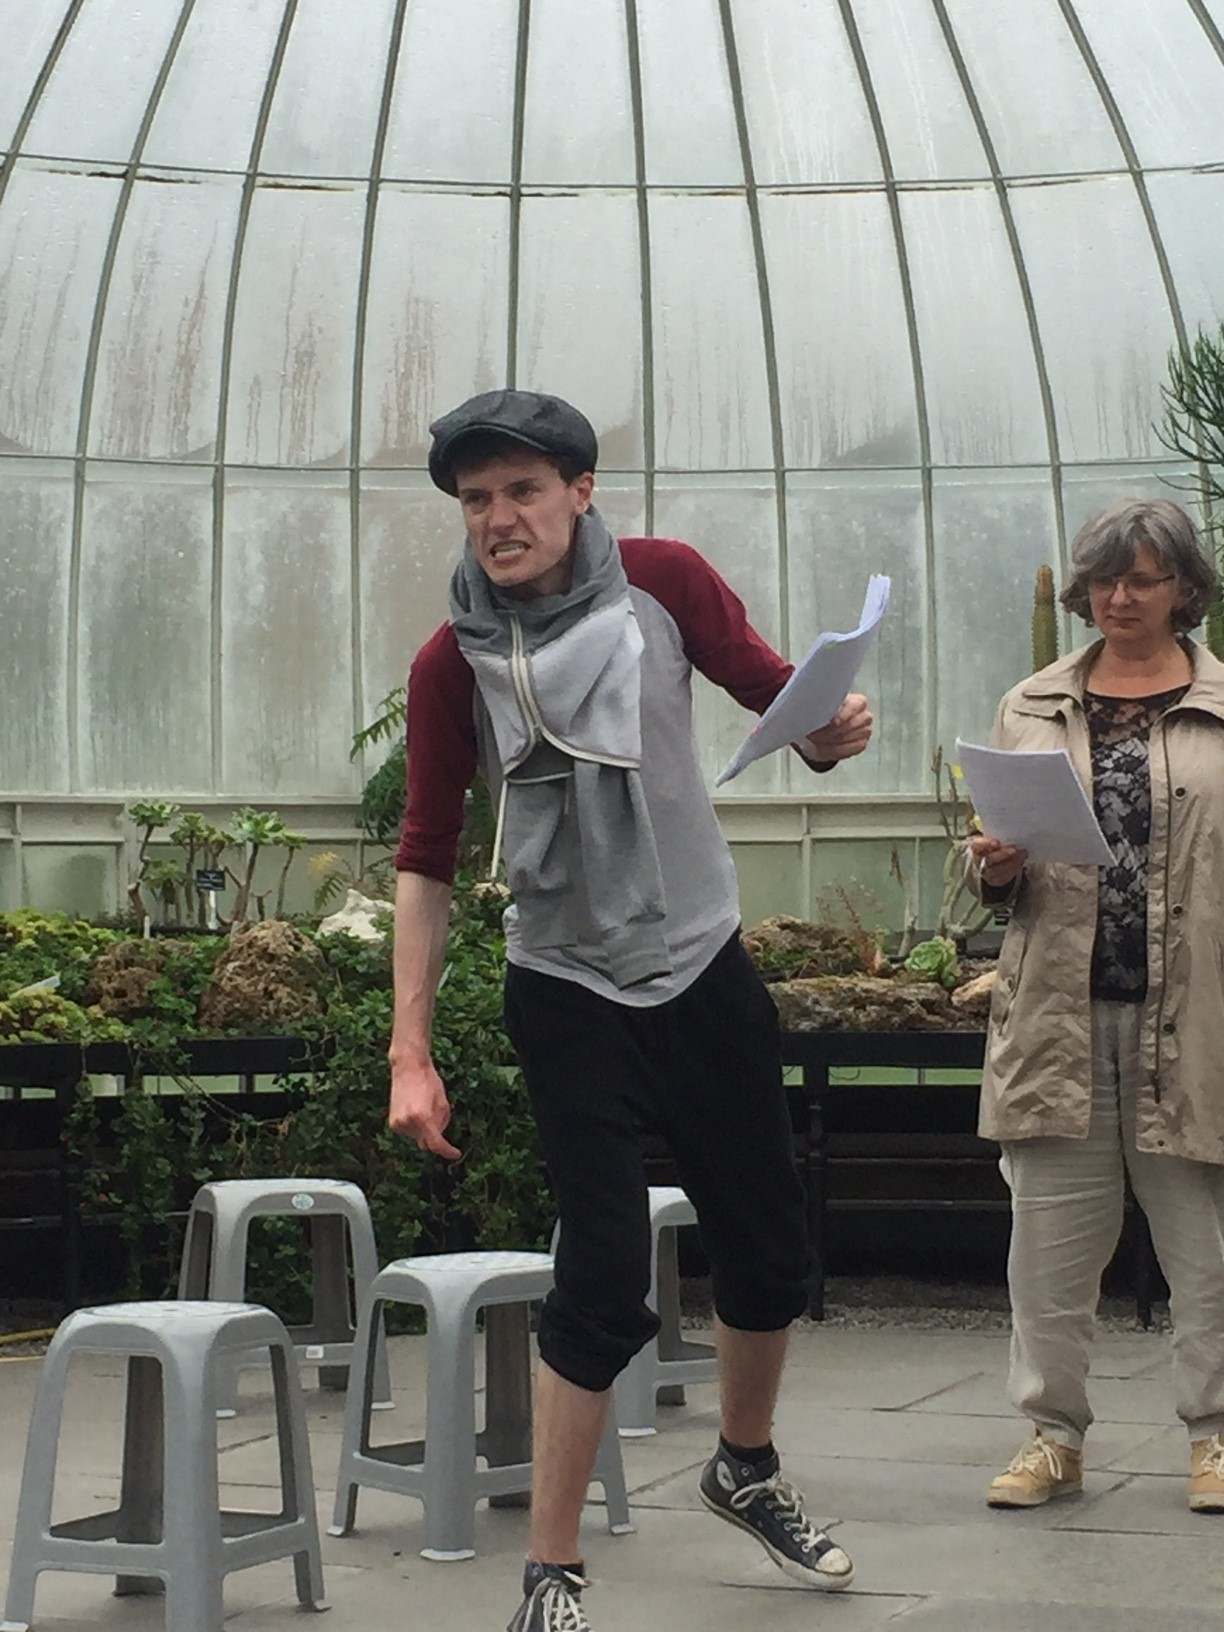 Nathan Byrne as Cornelius with Janette Foggo as Queen Lear